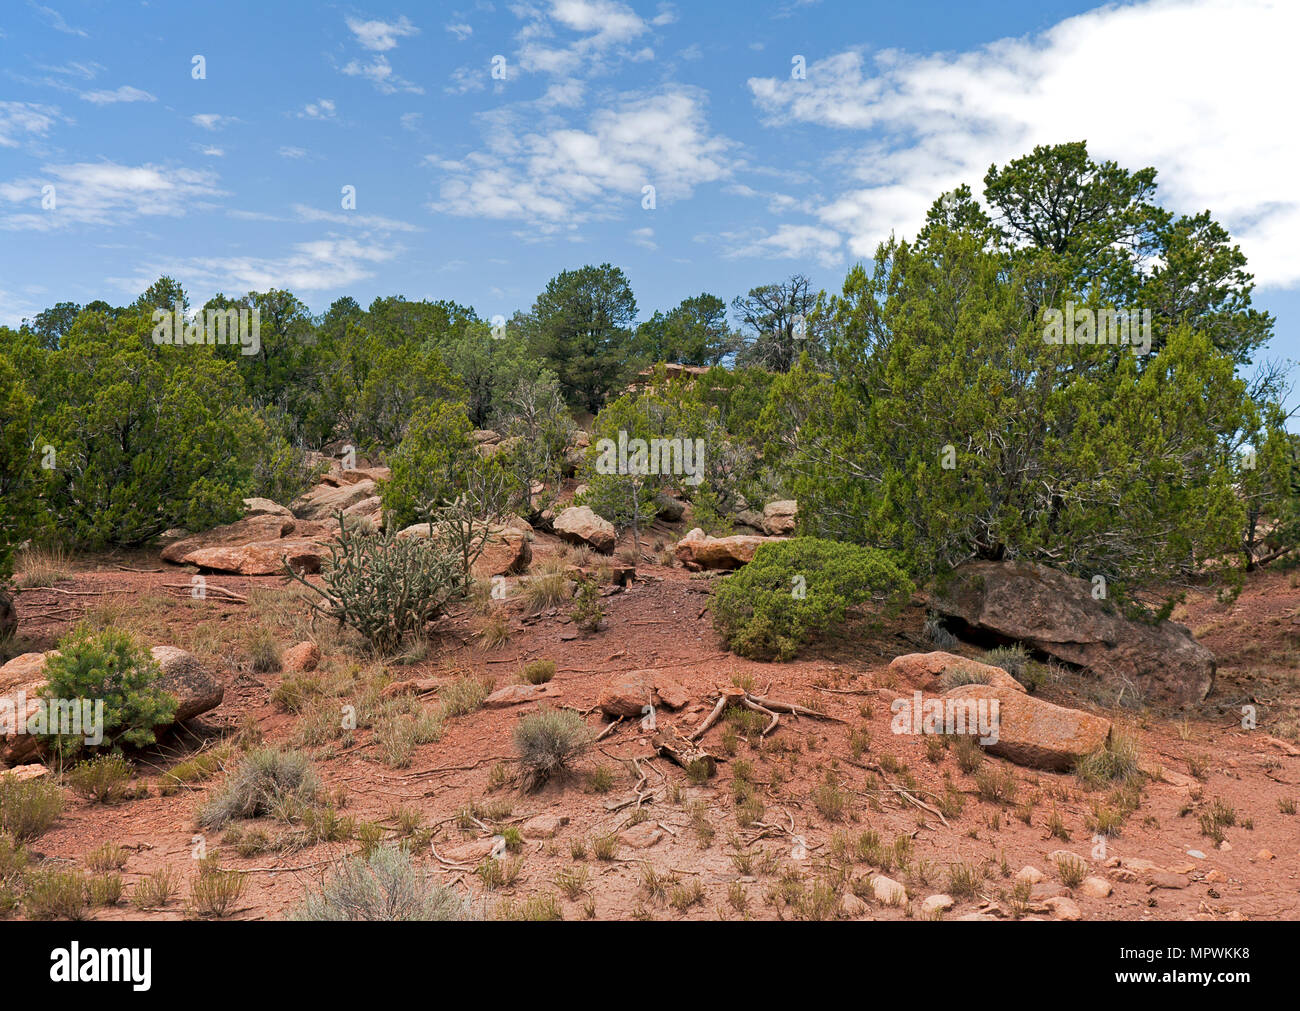 Generic image of American Southwest landscape, with cactus, pinion, juniper, rocks, and pines.  General locale is the highlands of New Mexico in the v - Stock Image